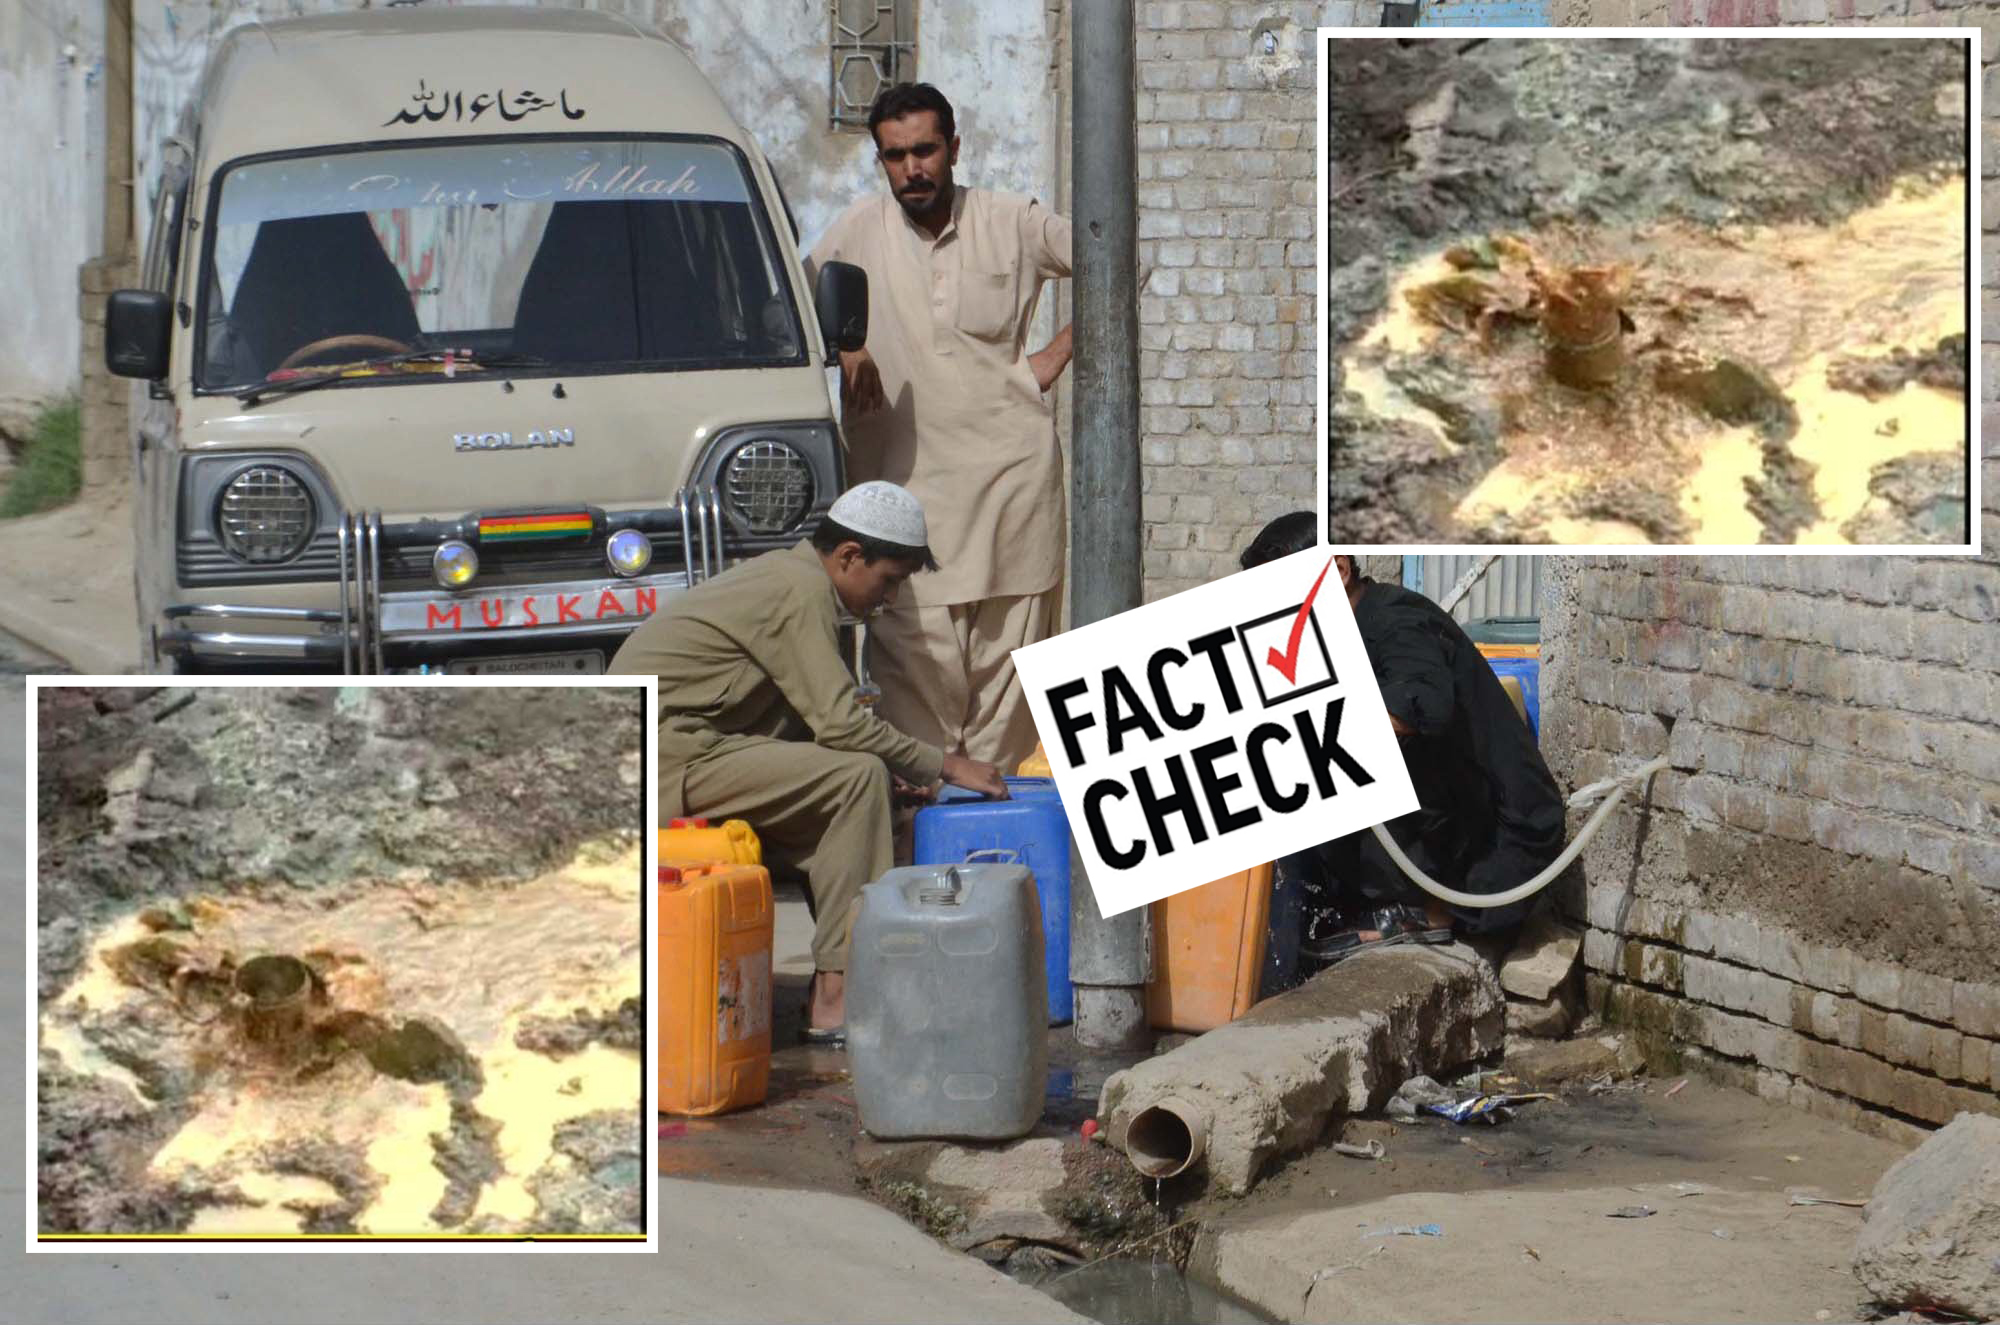 FAKE NEWS ALERT: No crude oil reserves found during water bore drilling in Islamabad